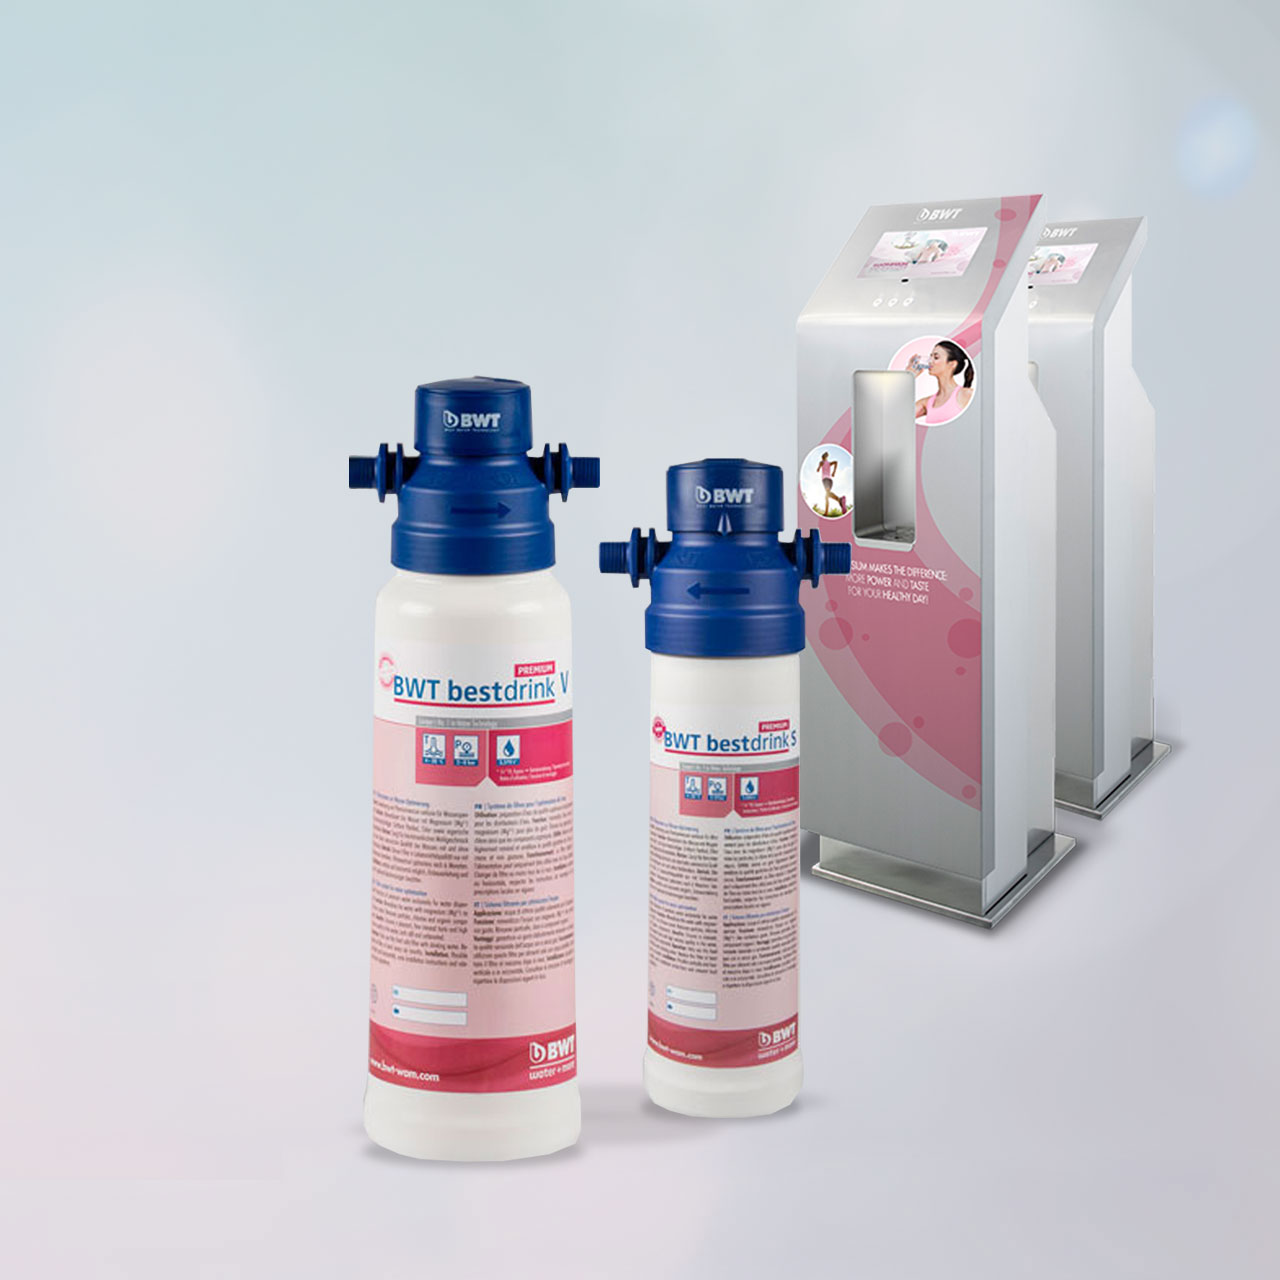 BWT bestdrink and water dispenser product image